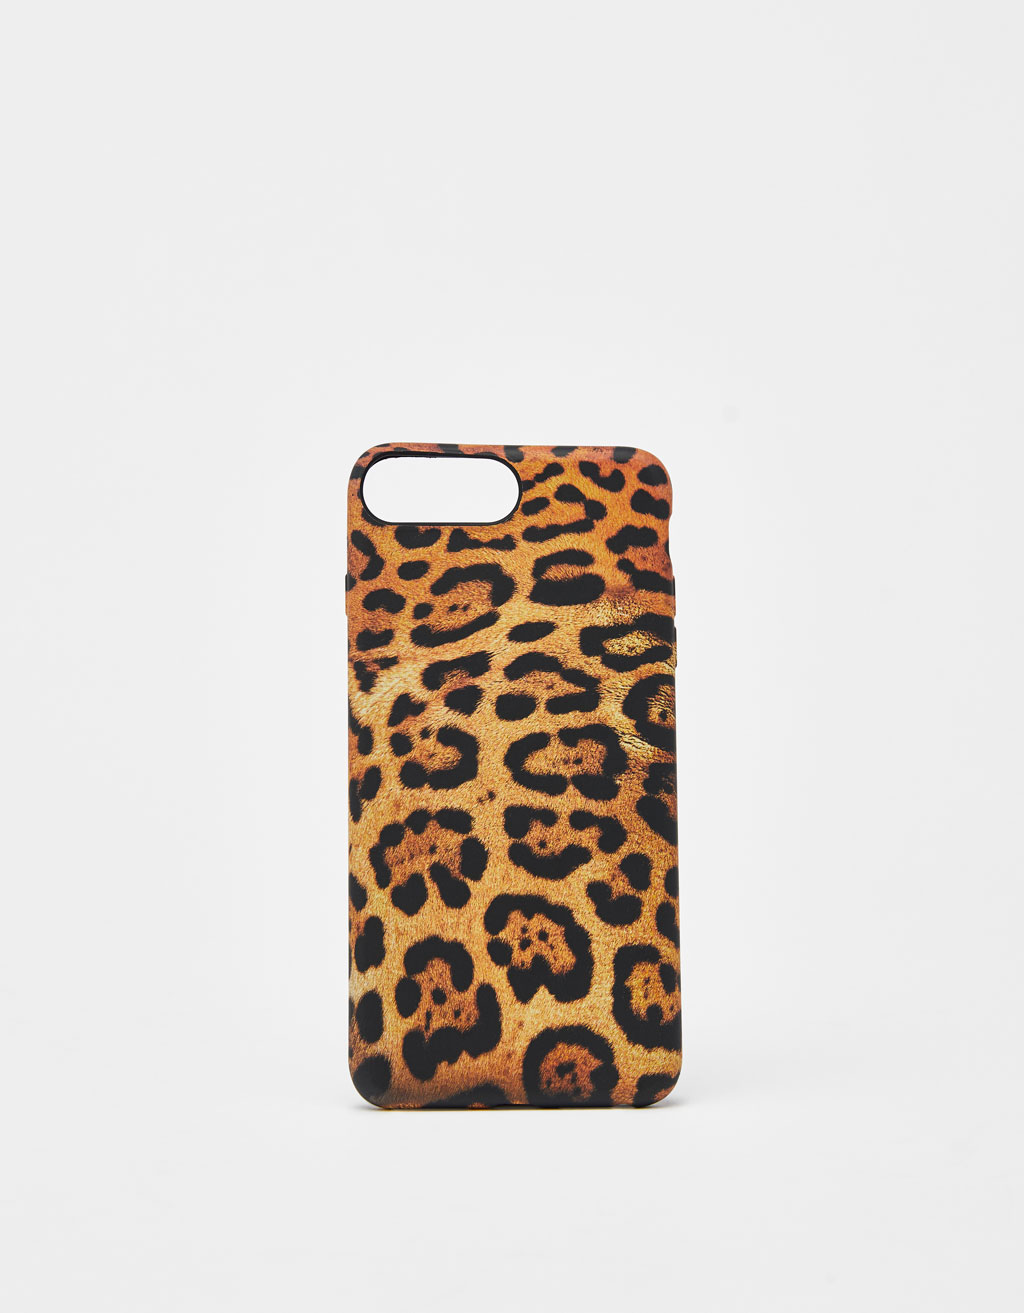 Coque léopard iPhone 6 plus/7 plus/8 plus